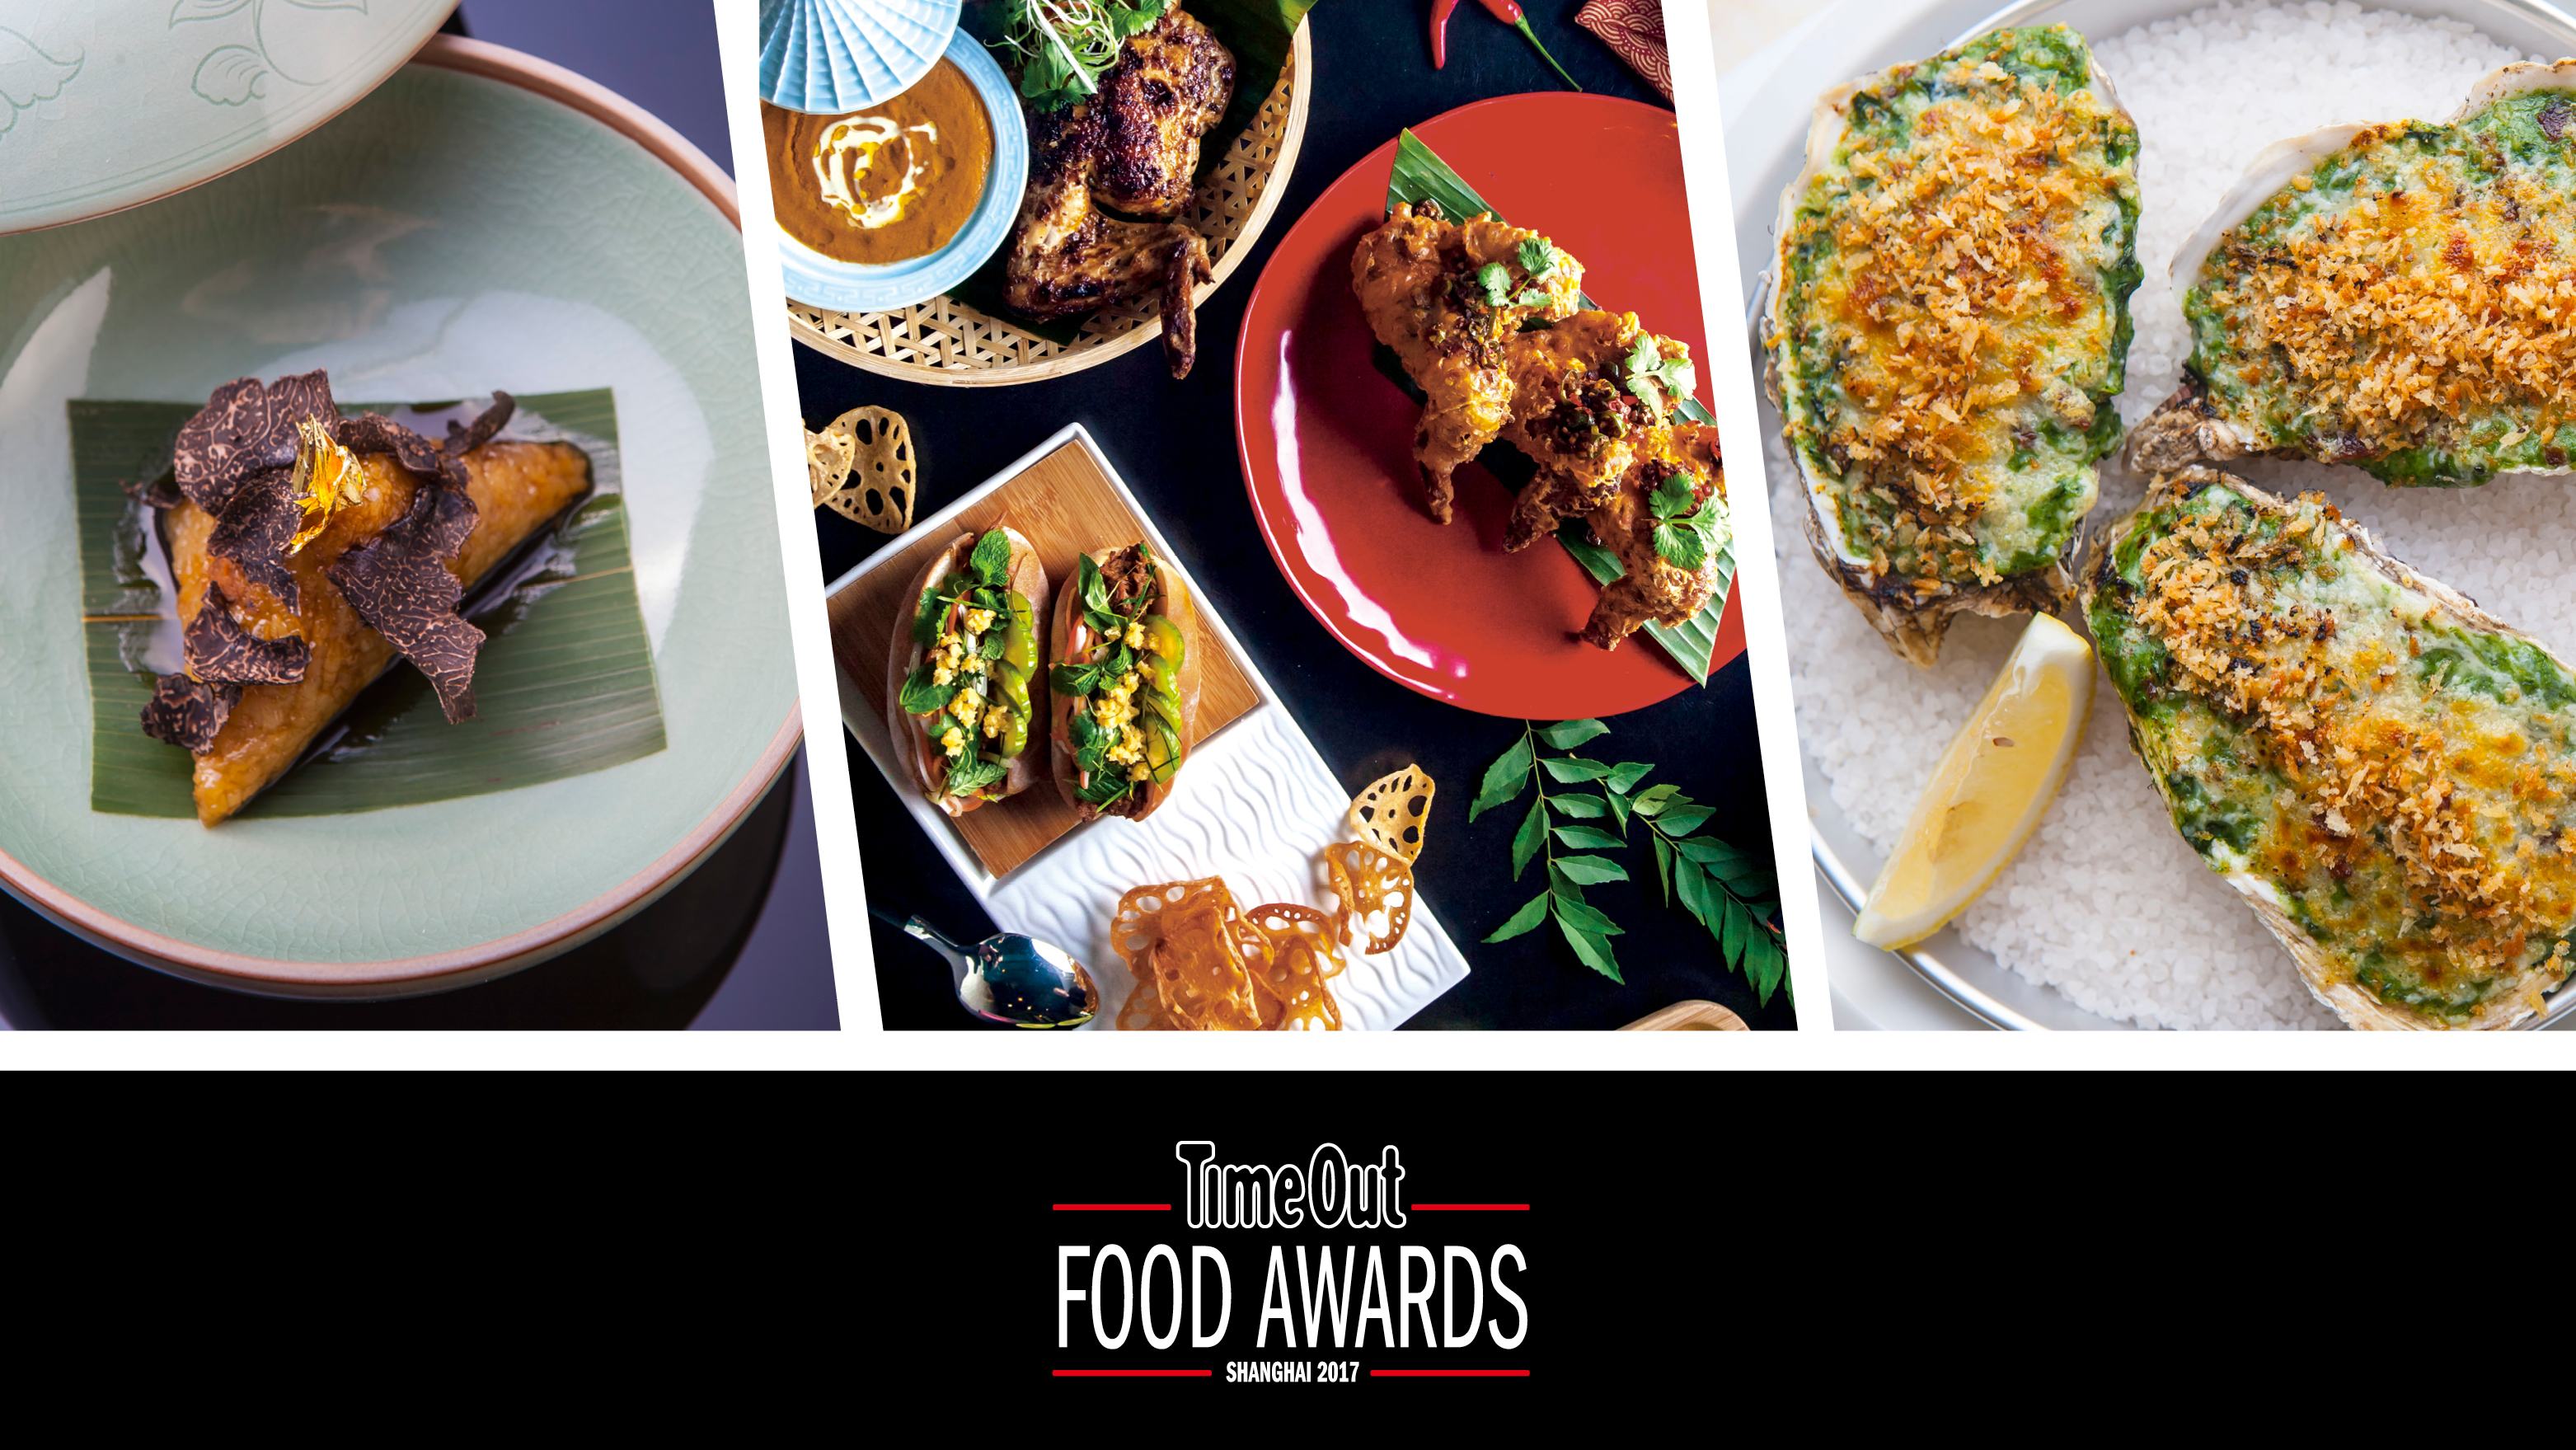 Vote in the Time Out Food Awards 2017